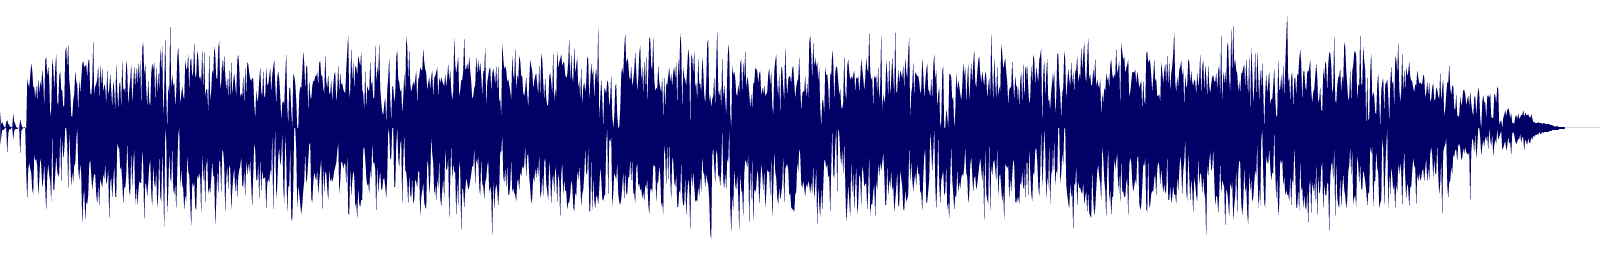 waveform of track #103732